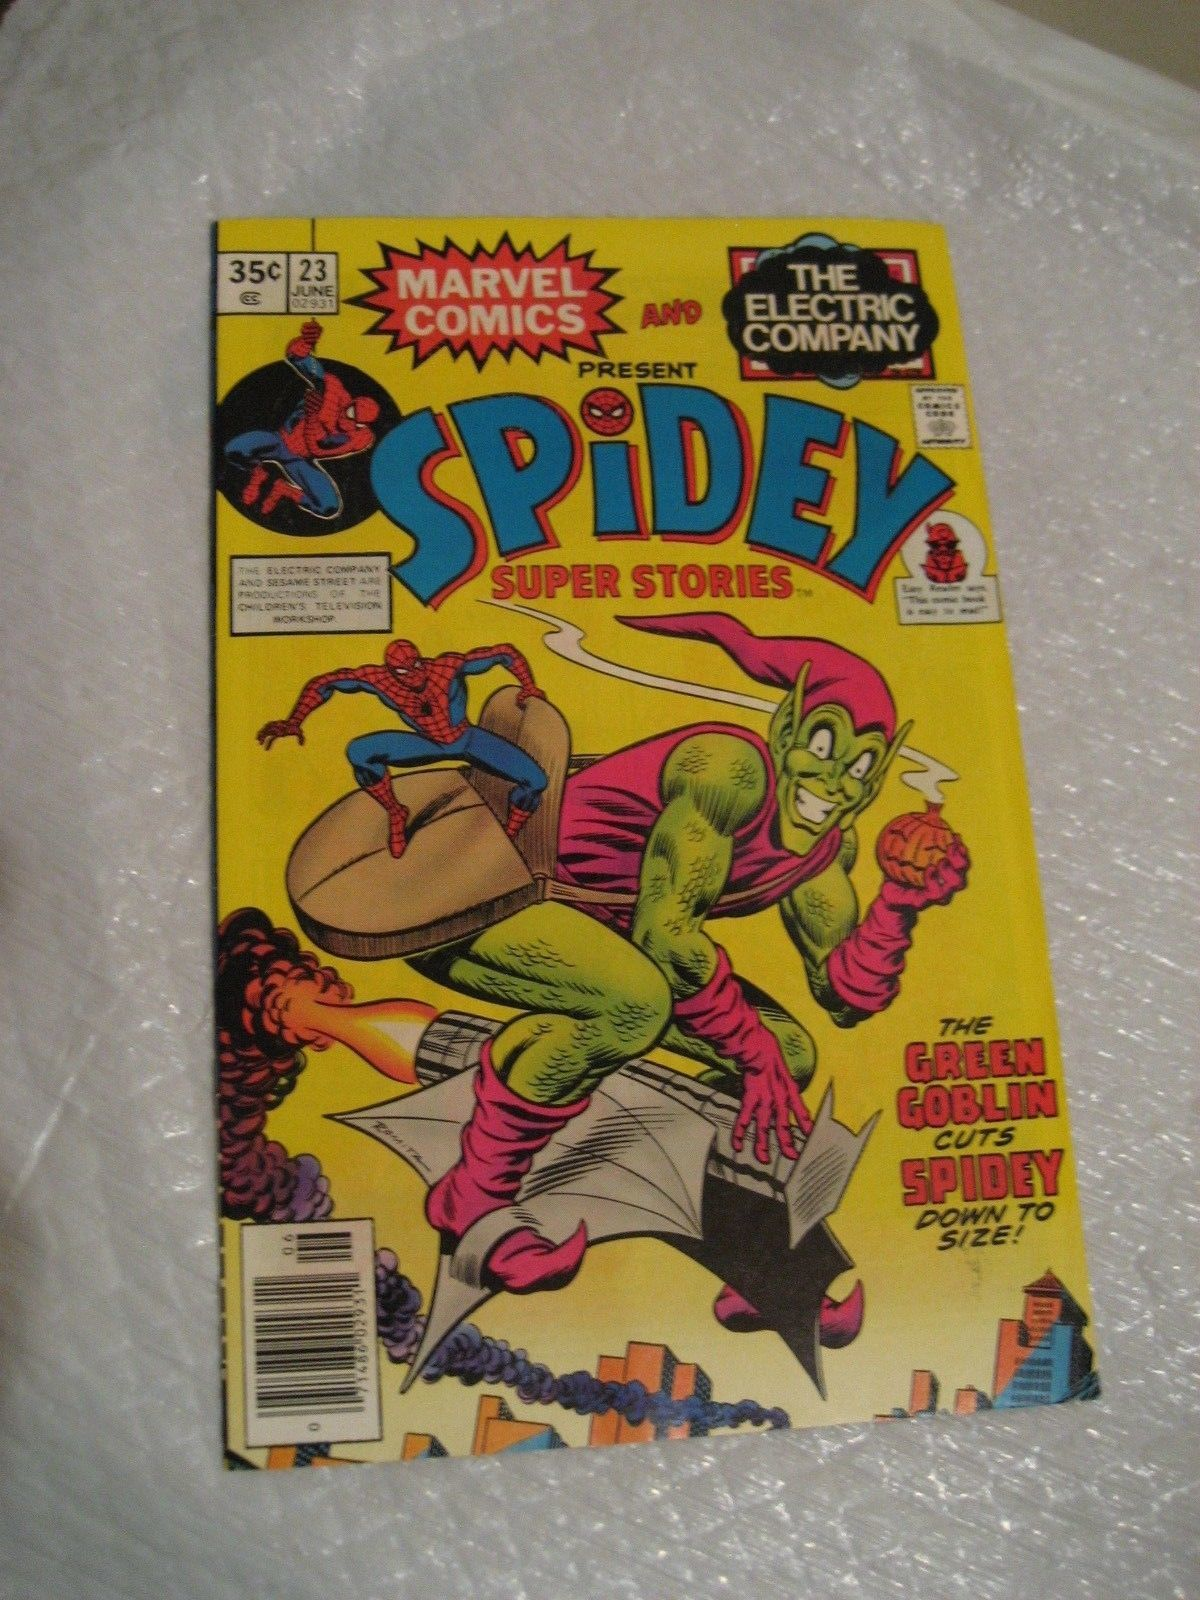 Primary image for SPIDEY SUPER STORIES #23 vf condition, marvel comic 1977